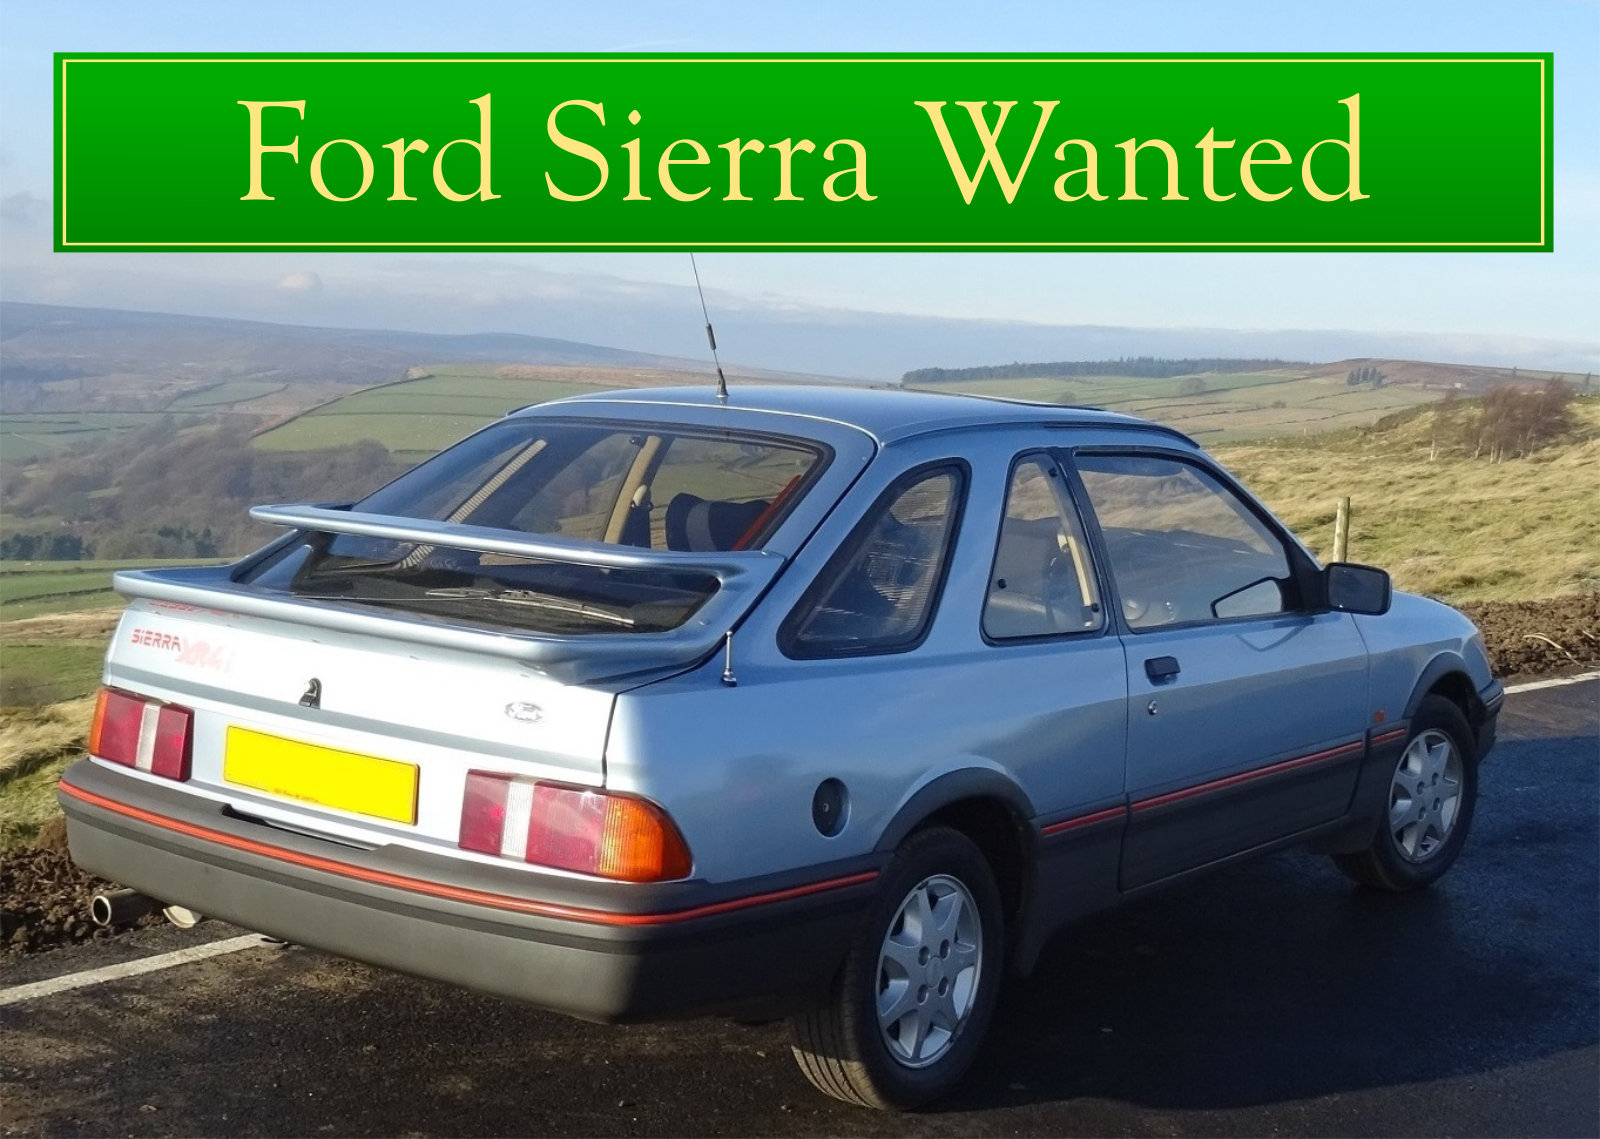 FORD COSWORTH WANTED Wanted (picture 5 of 6)